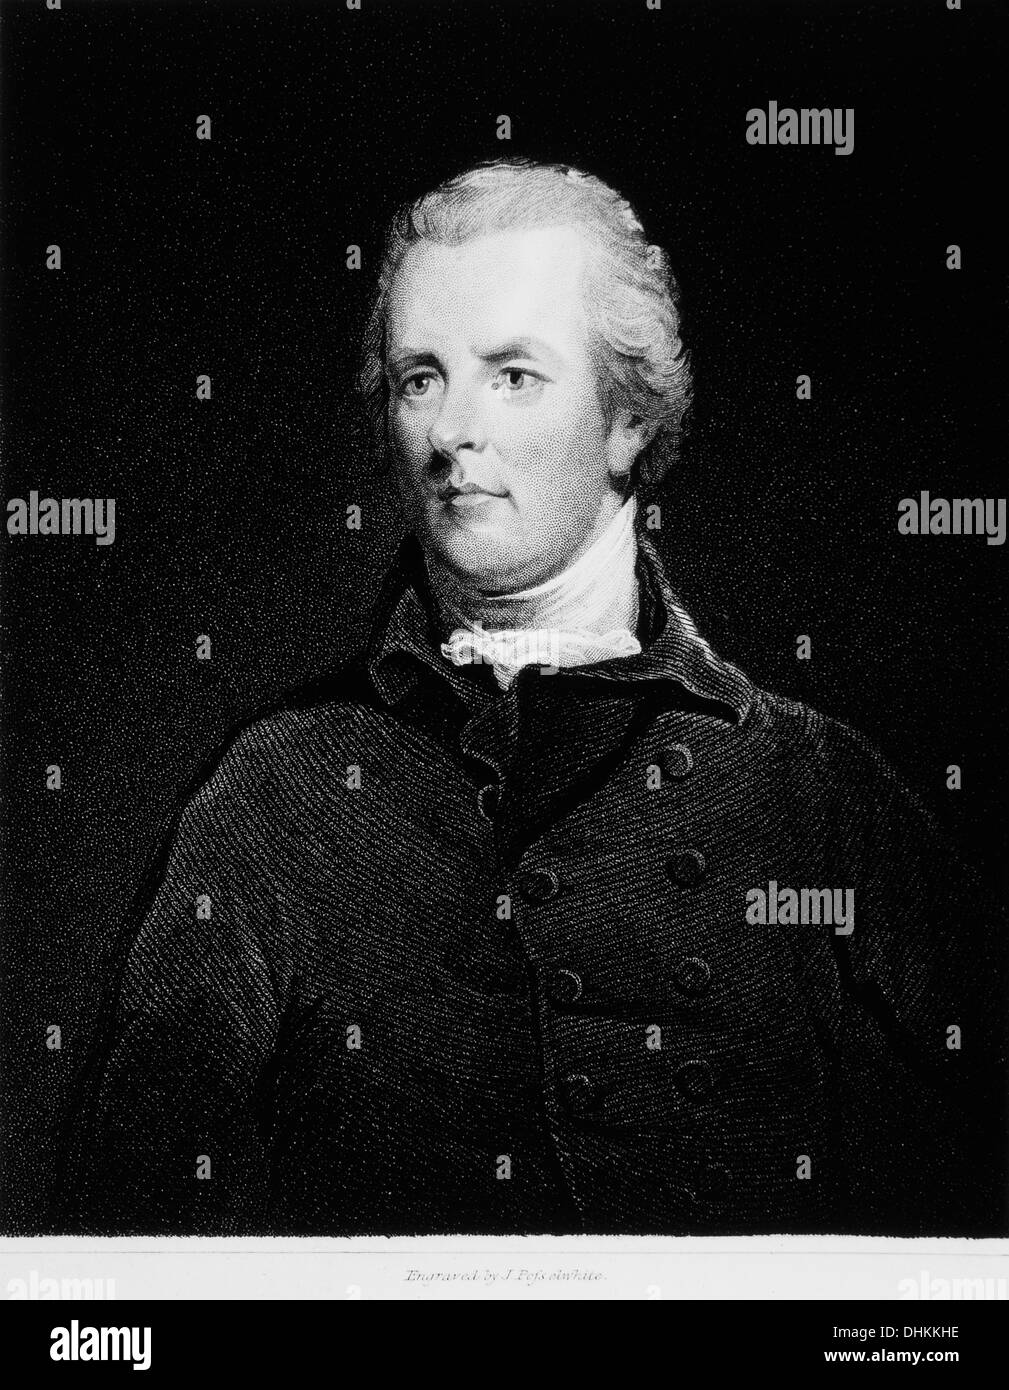 William Pitt the Younger (1759-1806), British Statesman and Youngest Prime Minister, Portrait - Stock Image